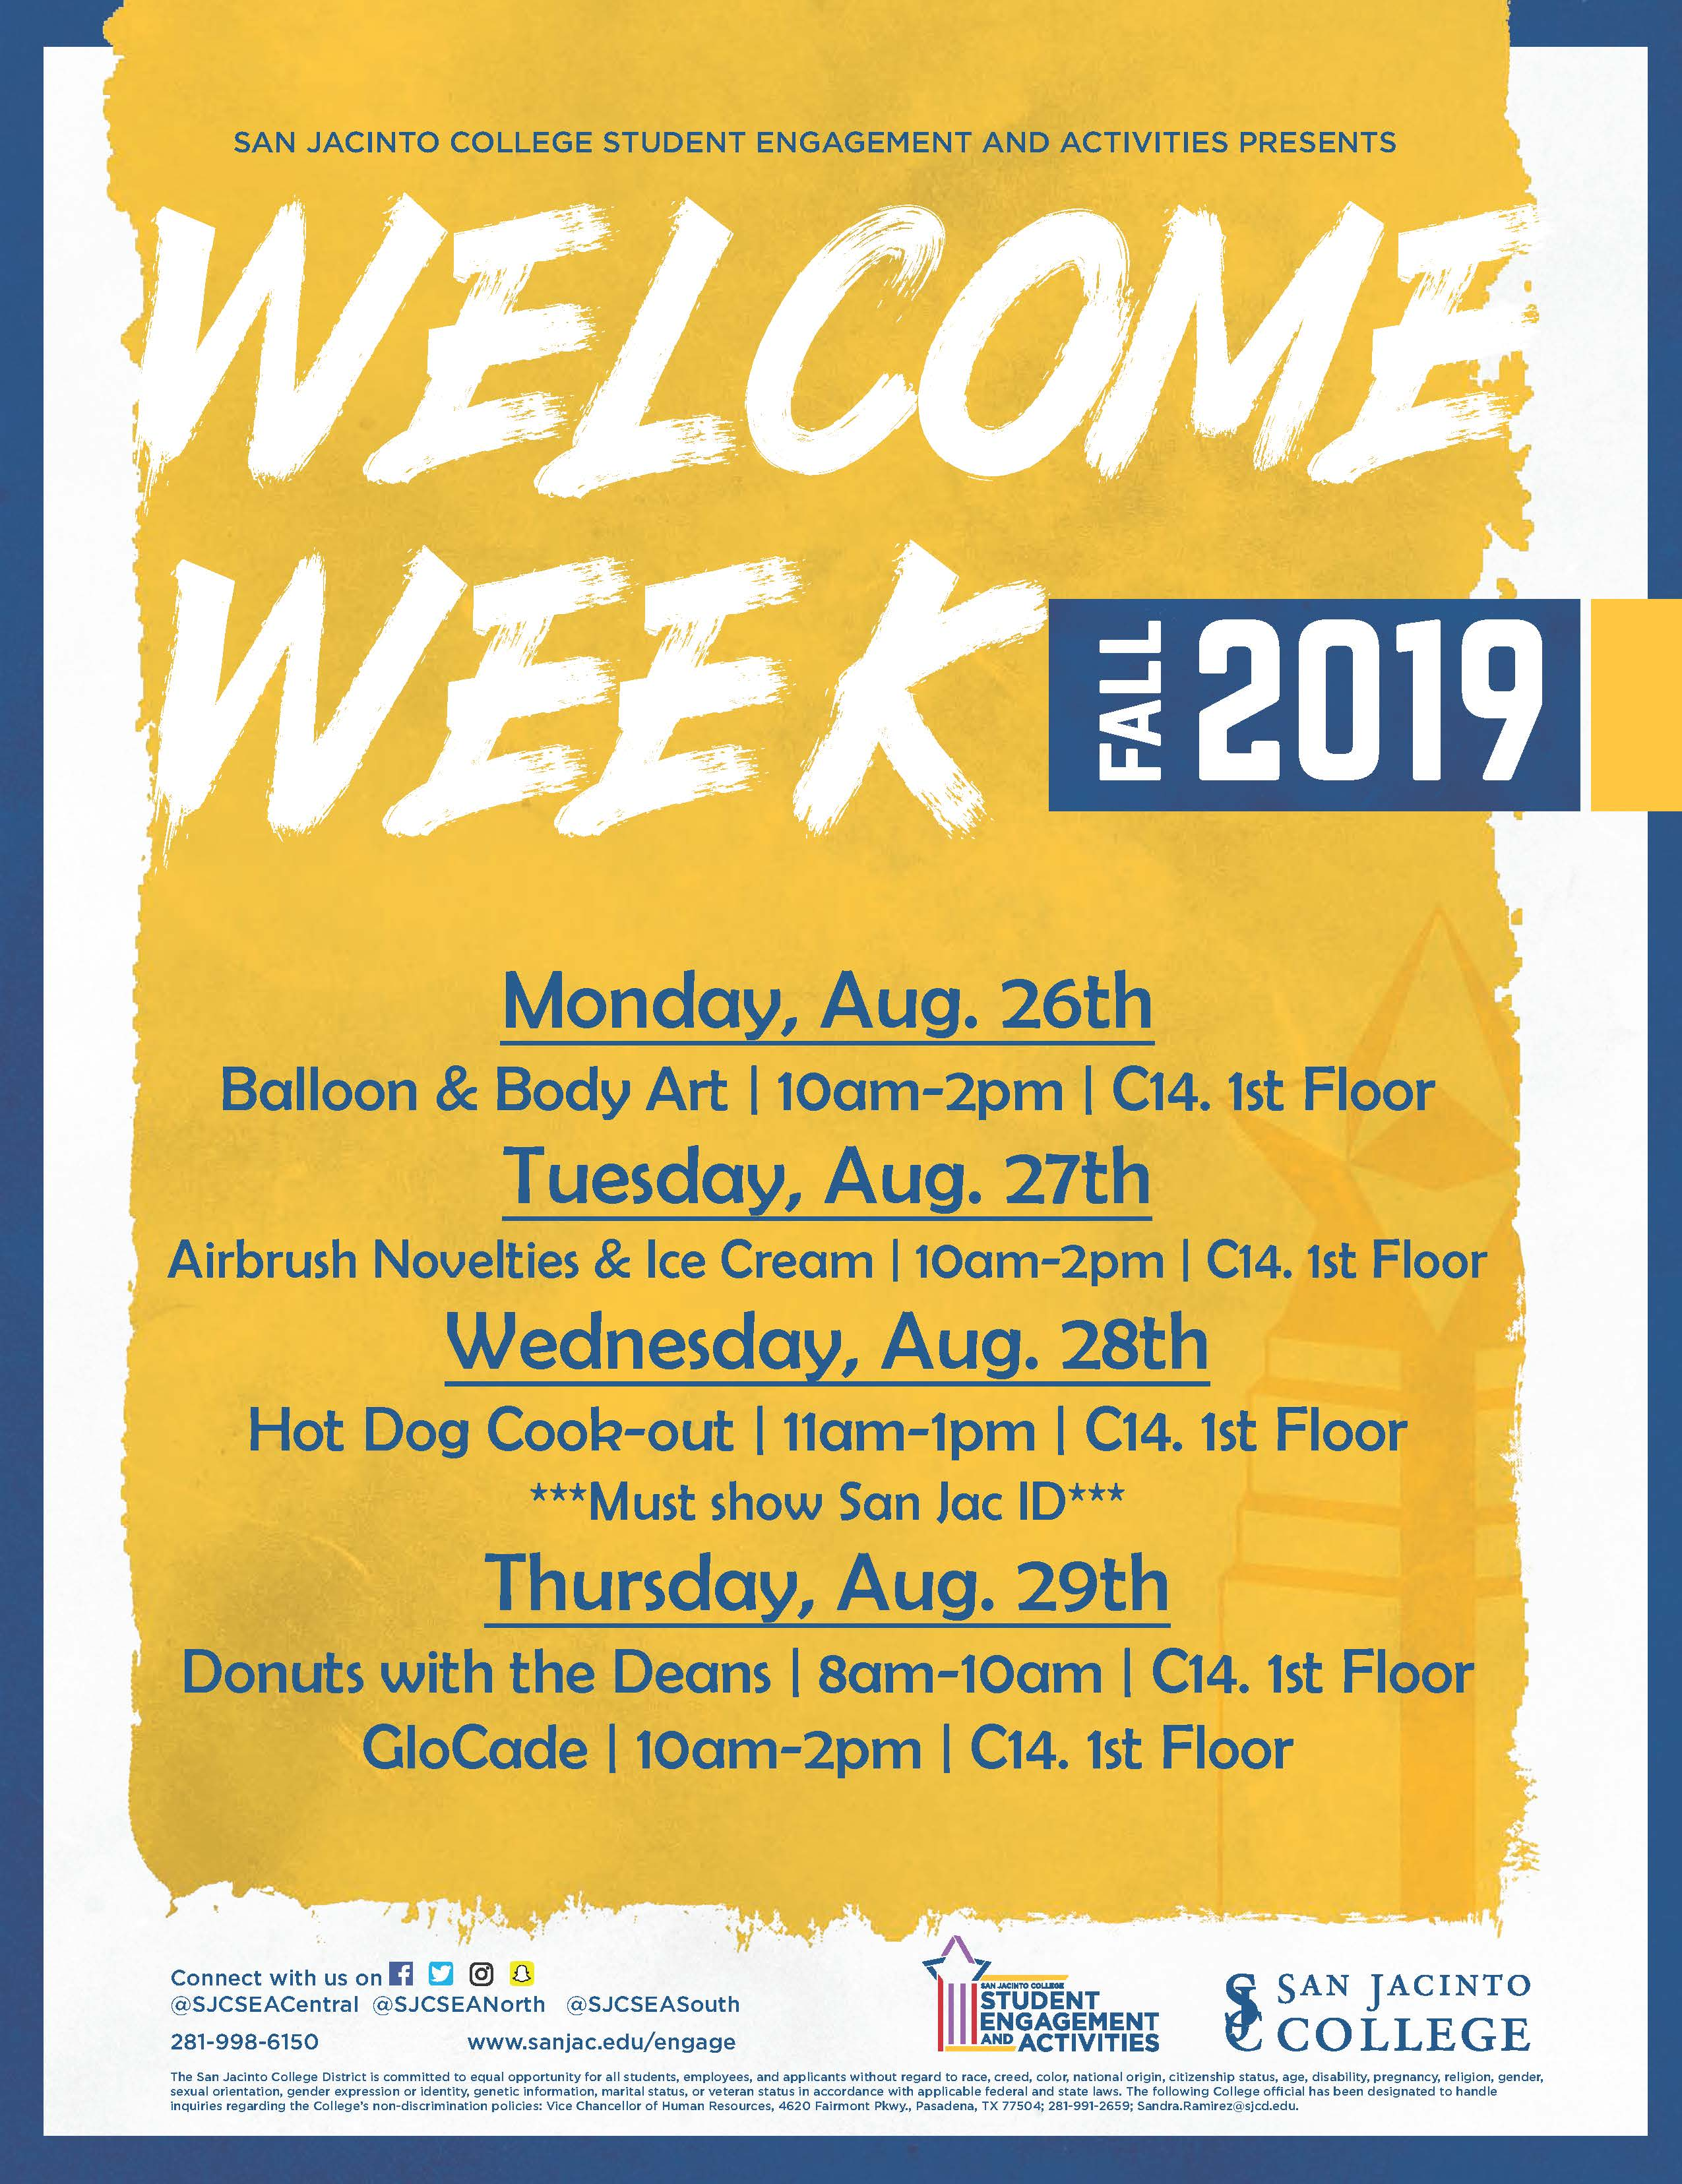 Central Welcome Week